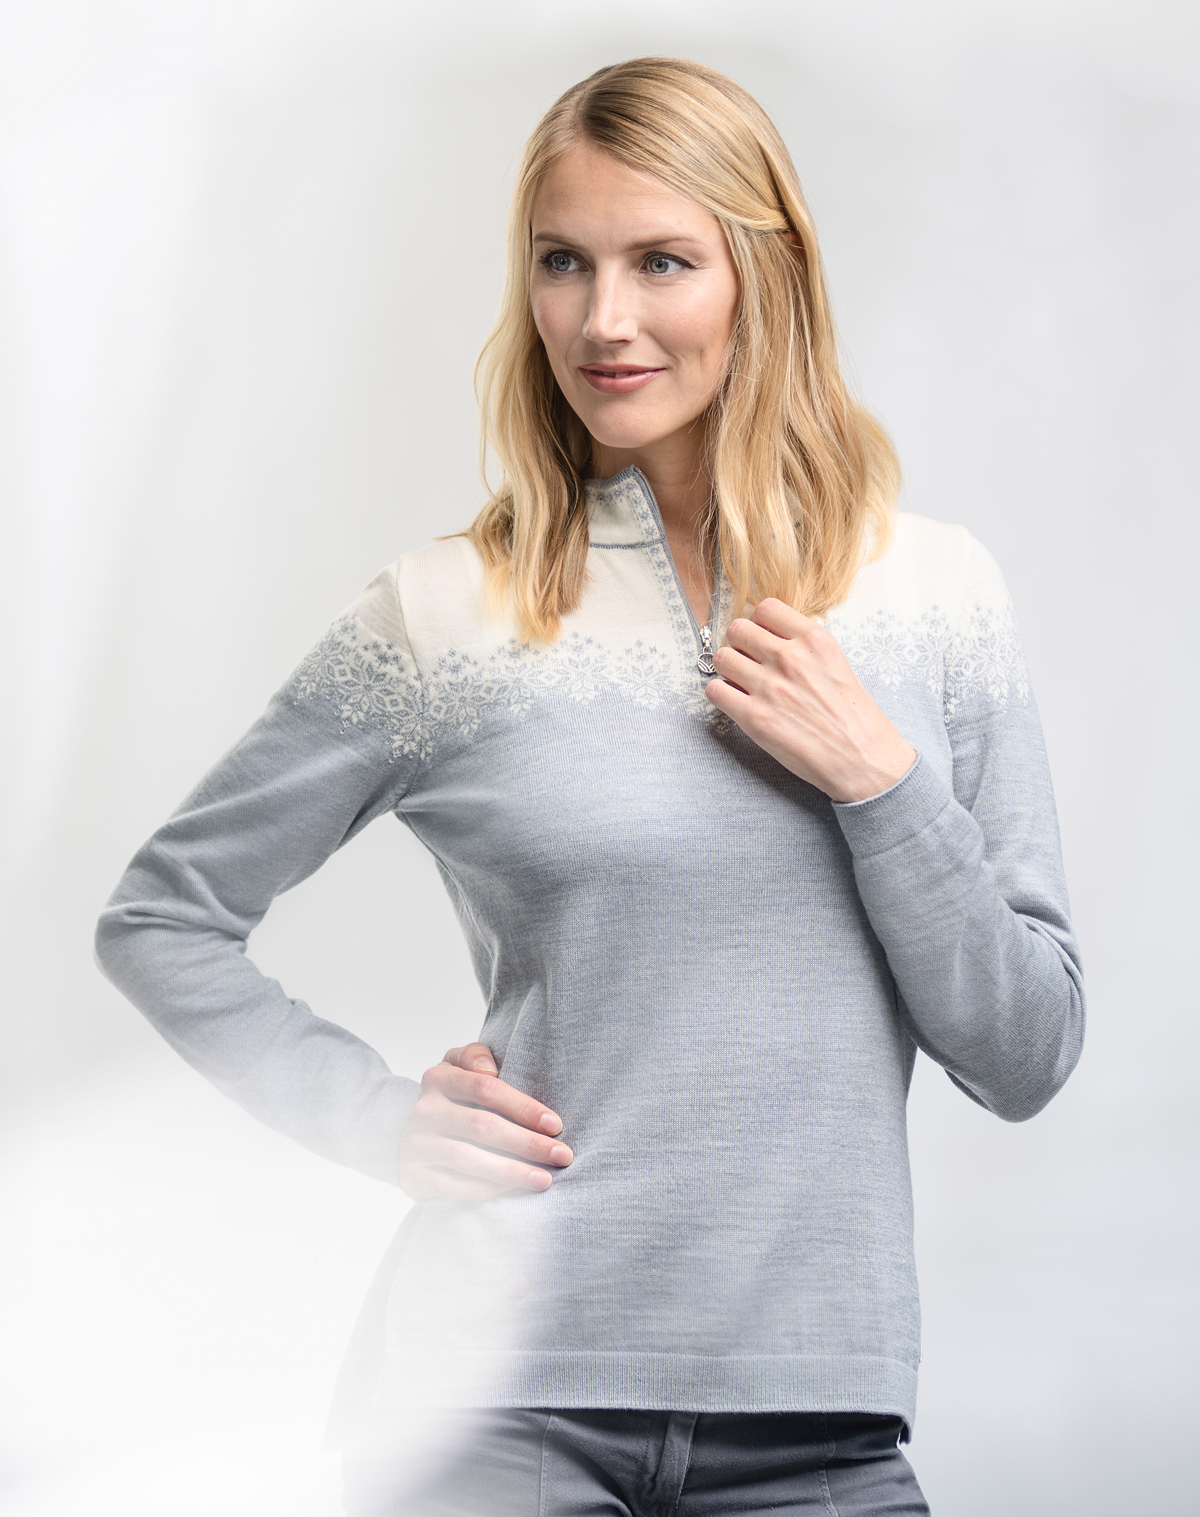 Snefrid women's sweater (1)